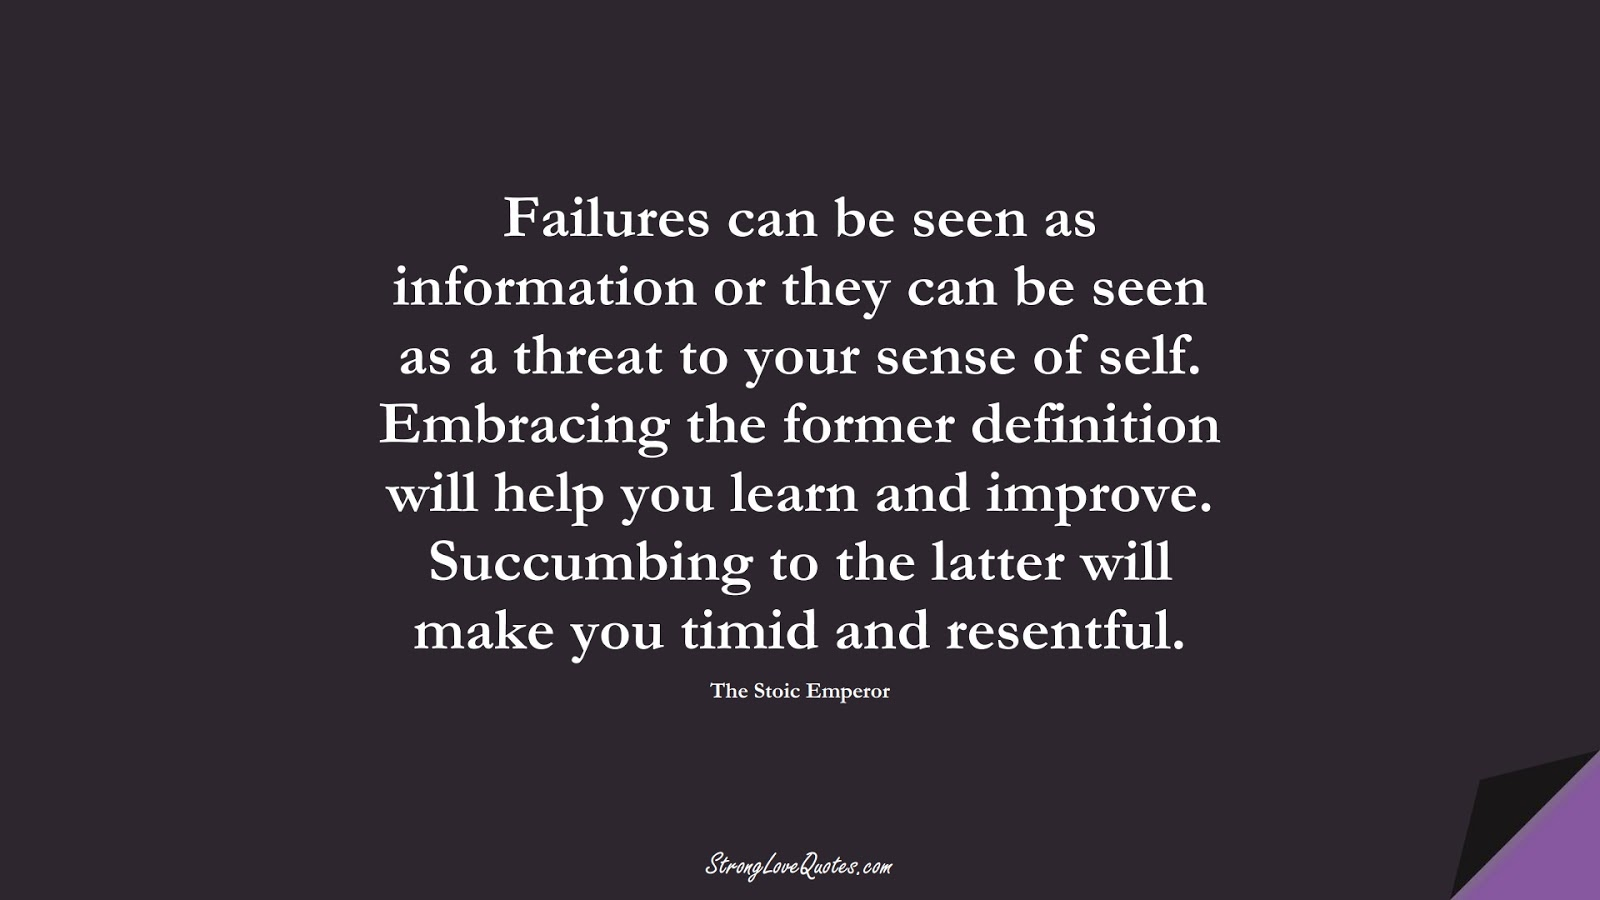 Failures can be seen as information or they can be seen as a threat to your sense of self. Embracing the former definition will help you learn and improve. Succumbing to the latter will make you timid and resentful. (The Stoic Emperor);  #LearningQuotes